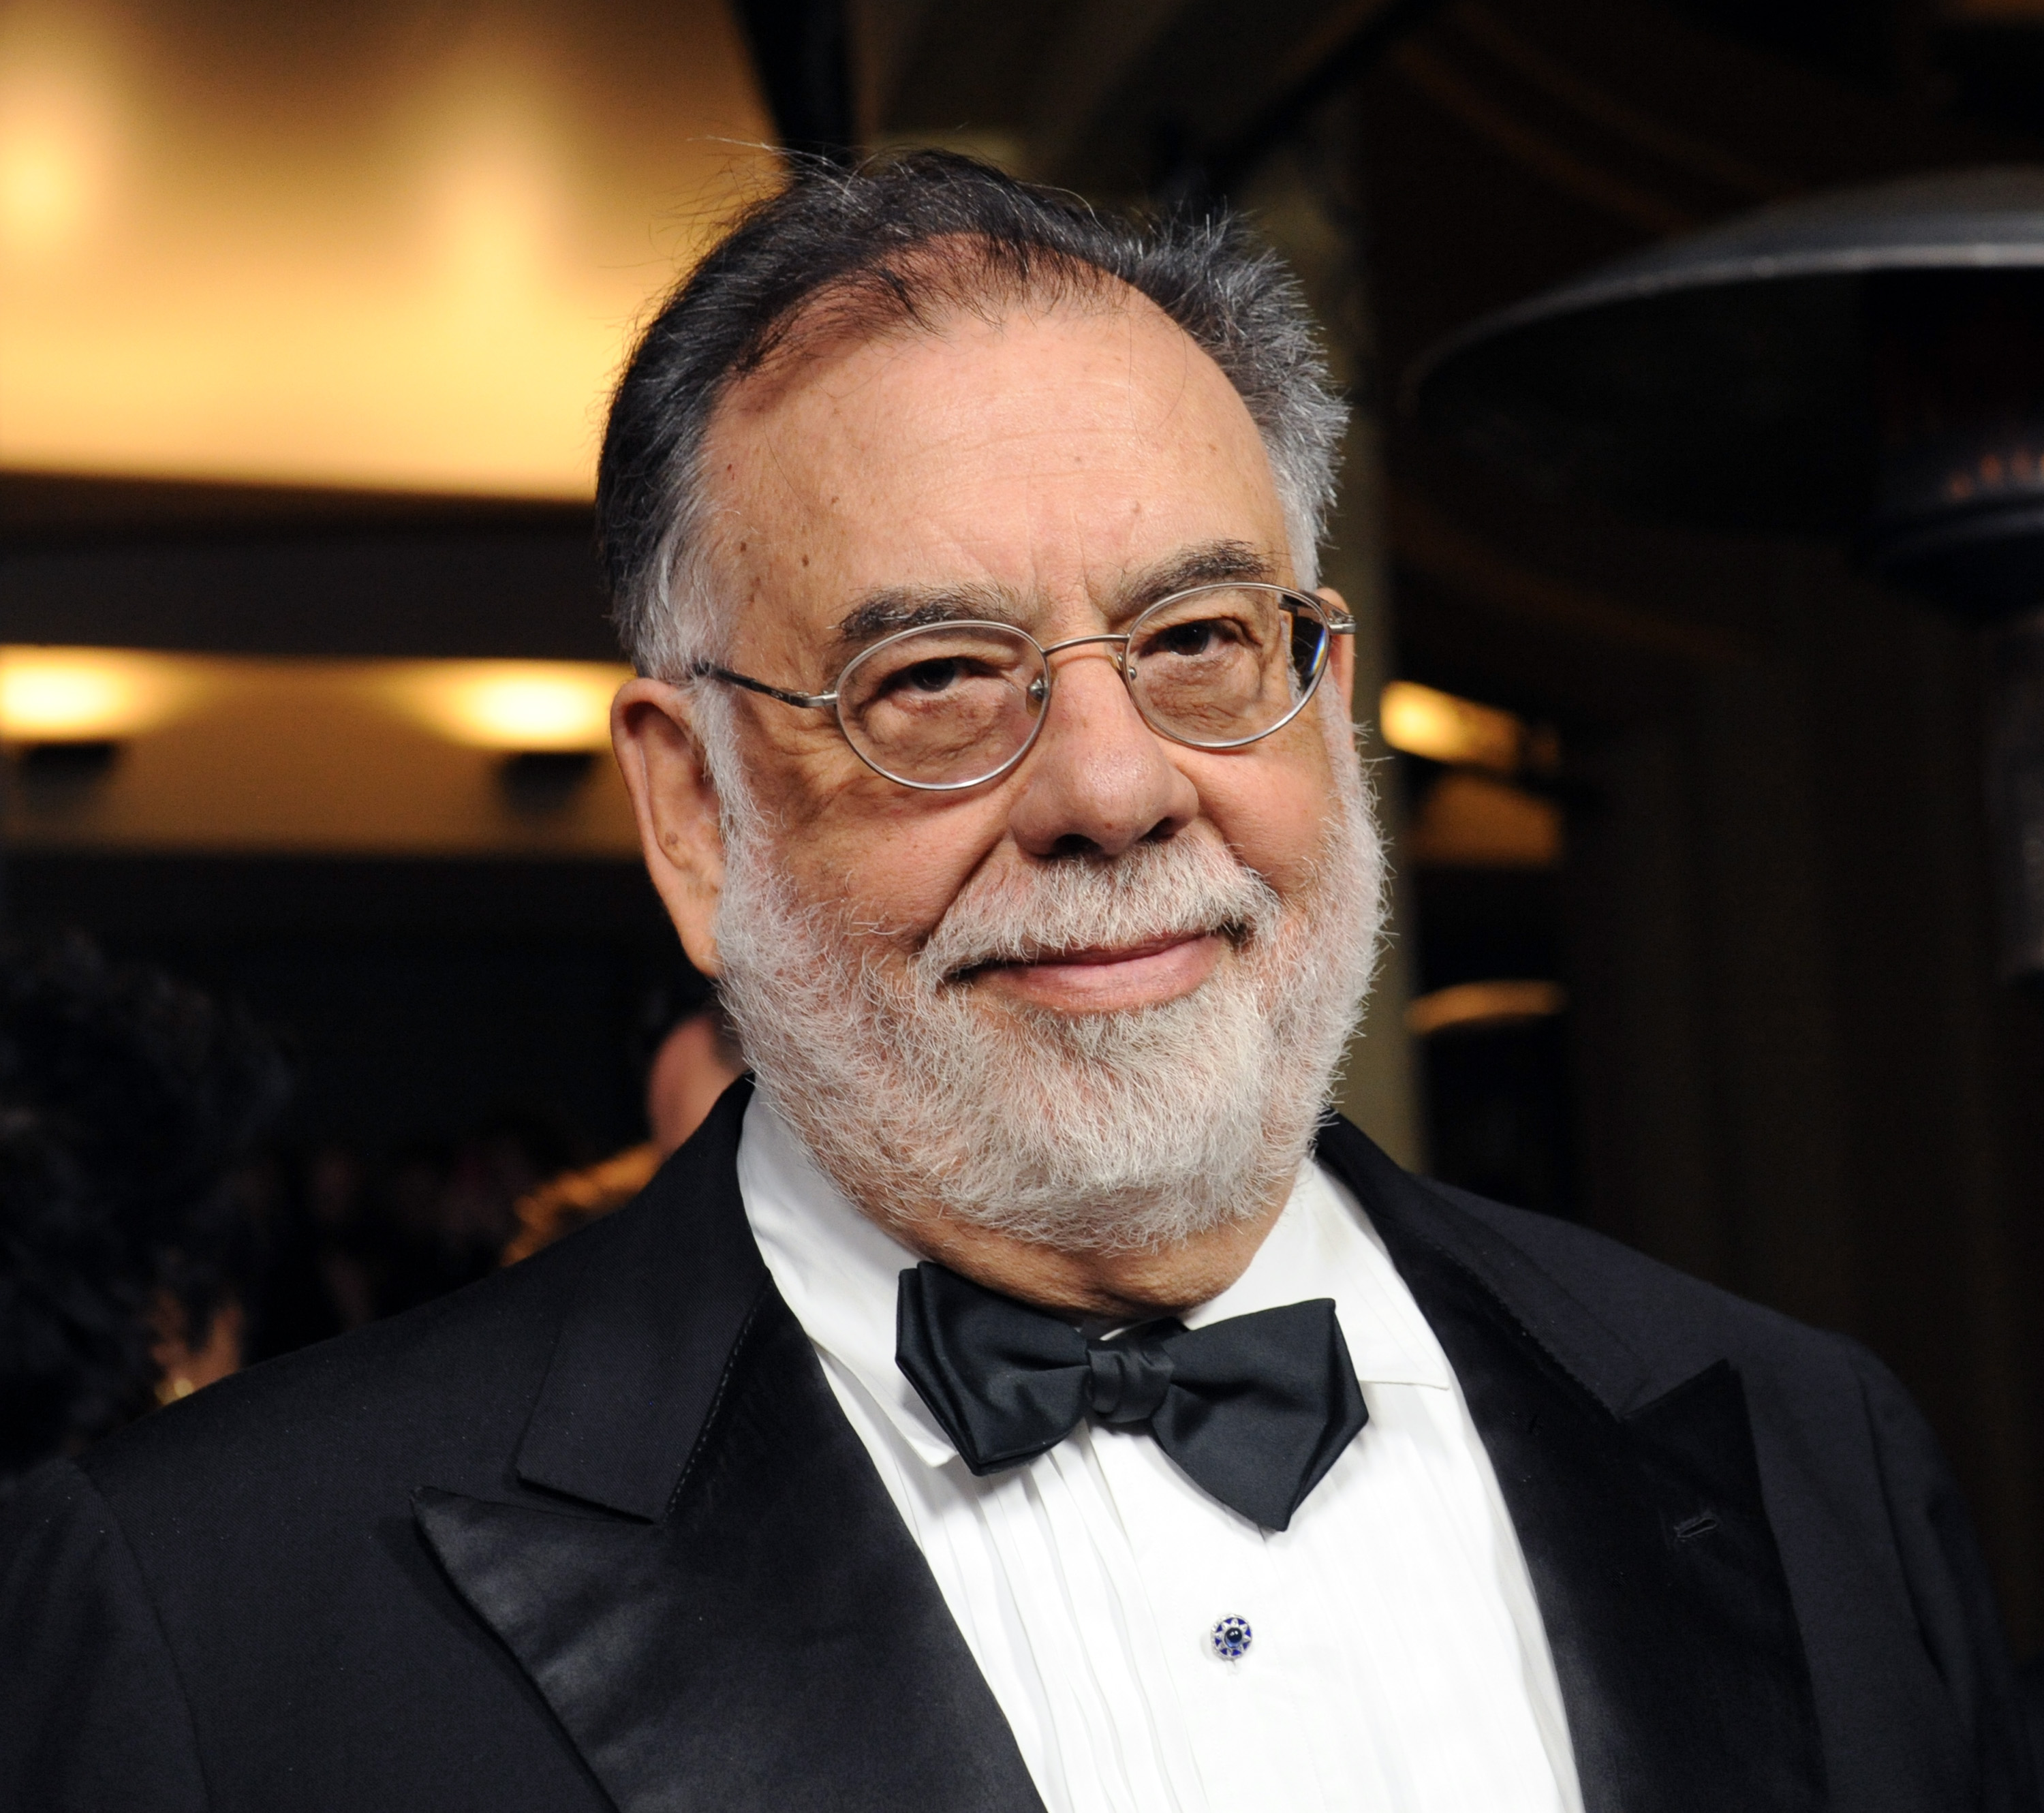 Francis Ford Coppola arrives at the DGA Awards in Los Angeles - francis-ford-coppola_4